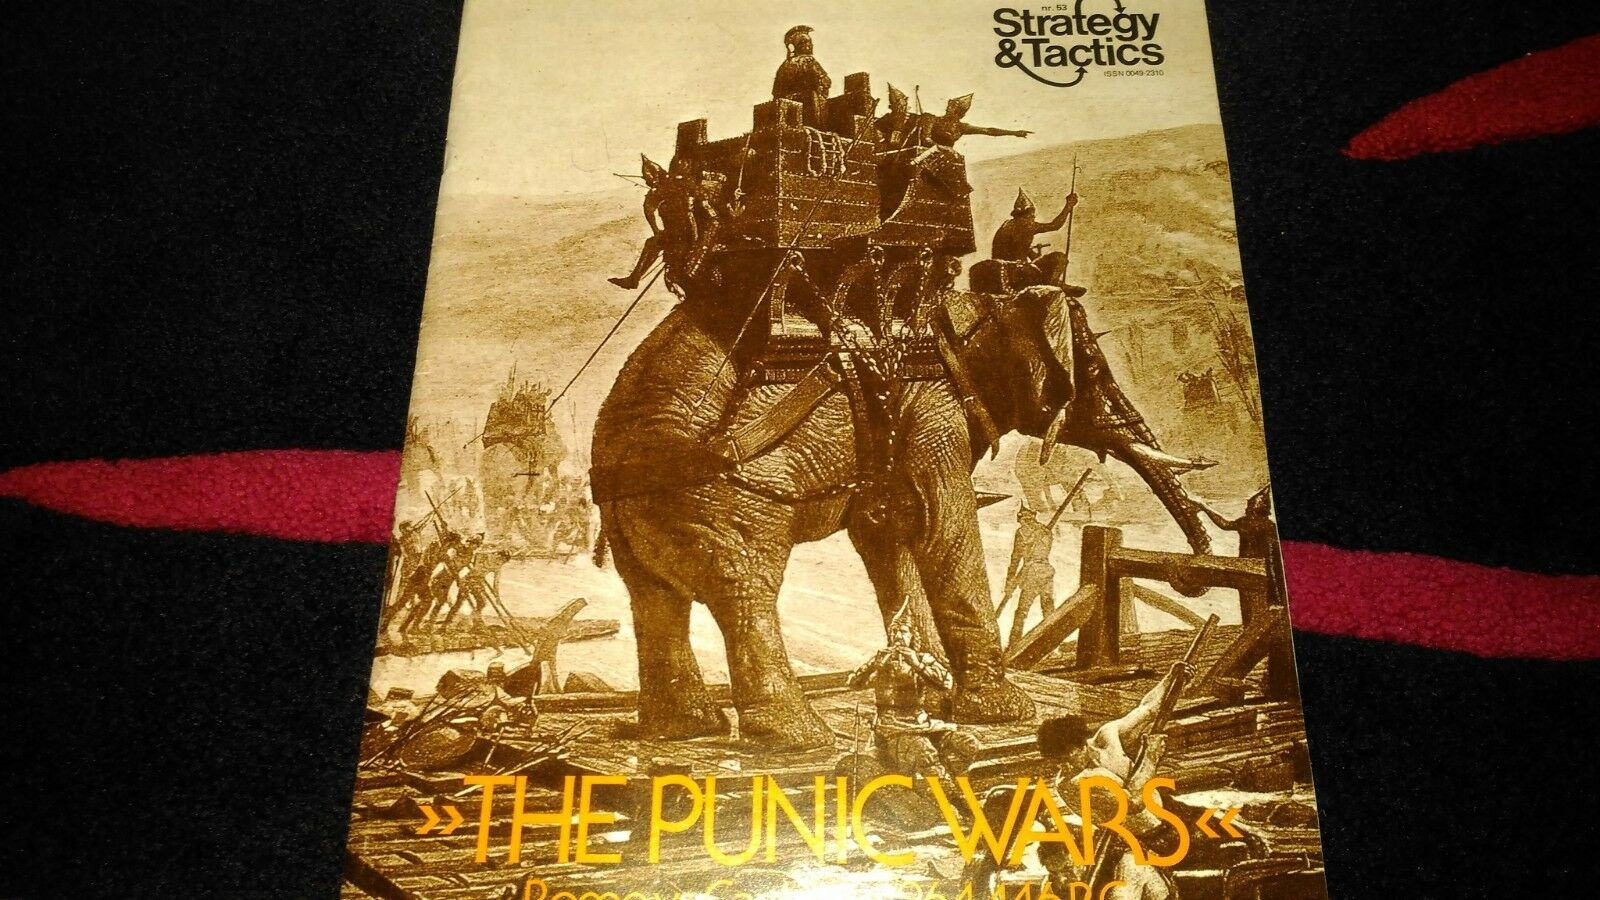 The Punic Wars Rome vs. Carthage 264-146 BC S&T 53 MINT & UNPUNCHED 1998